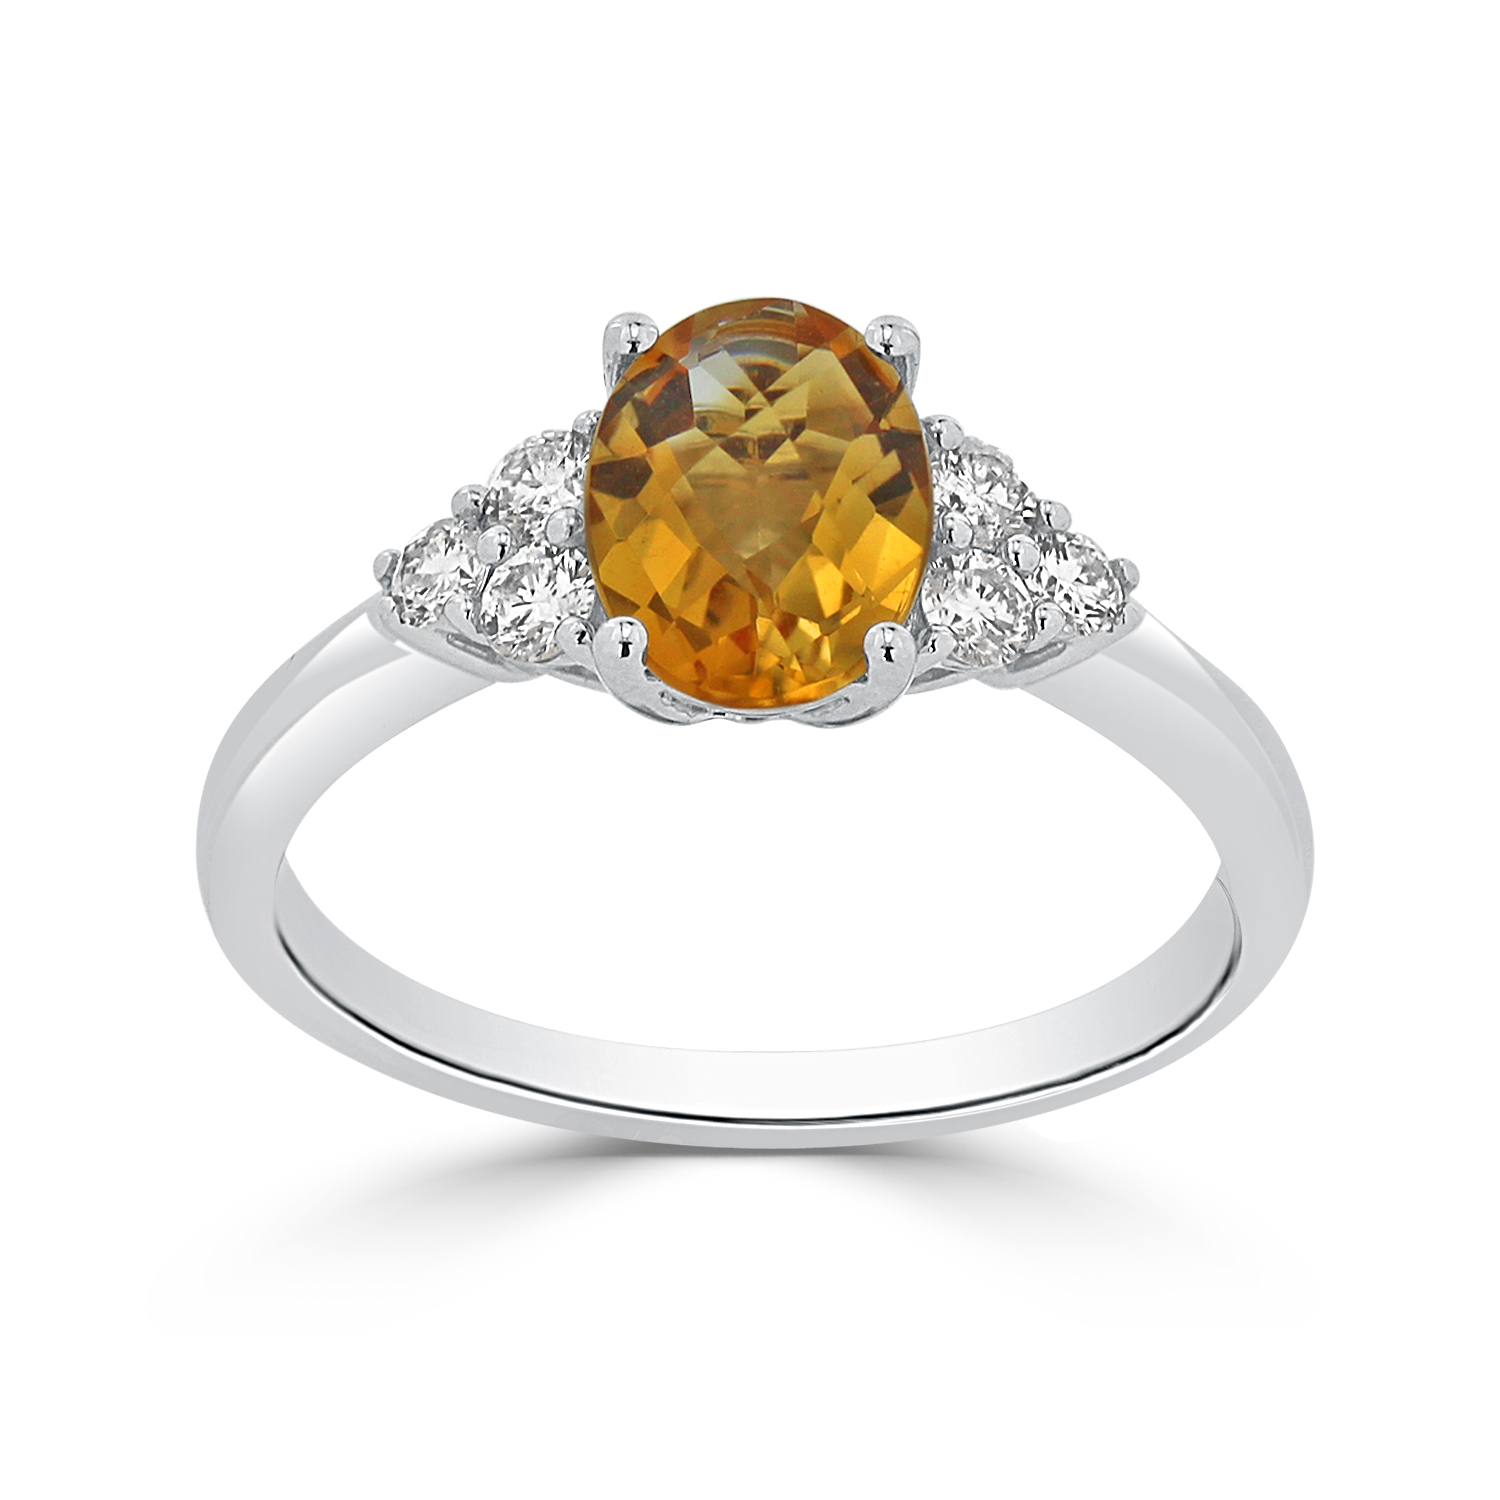 Halo Citrine Diamond Ring in 14K White Gold with 1.00 carat Oval Citrine